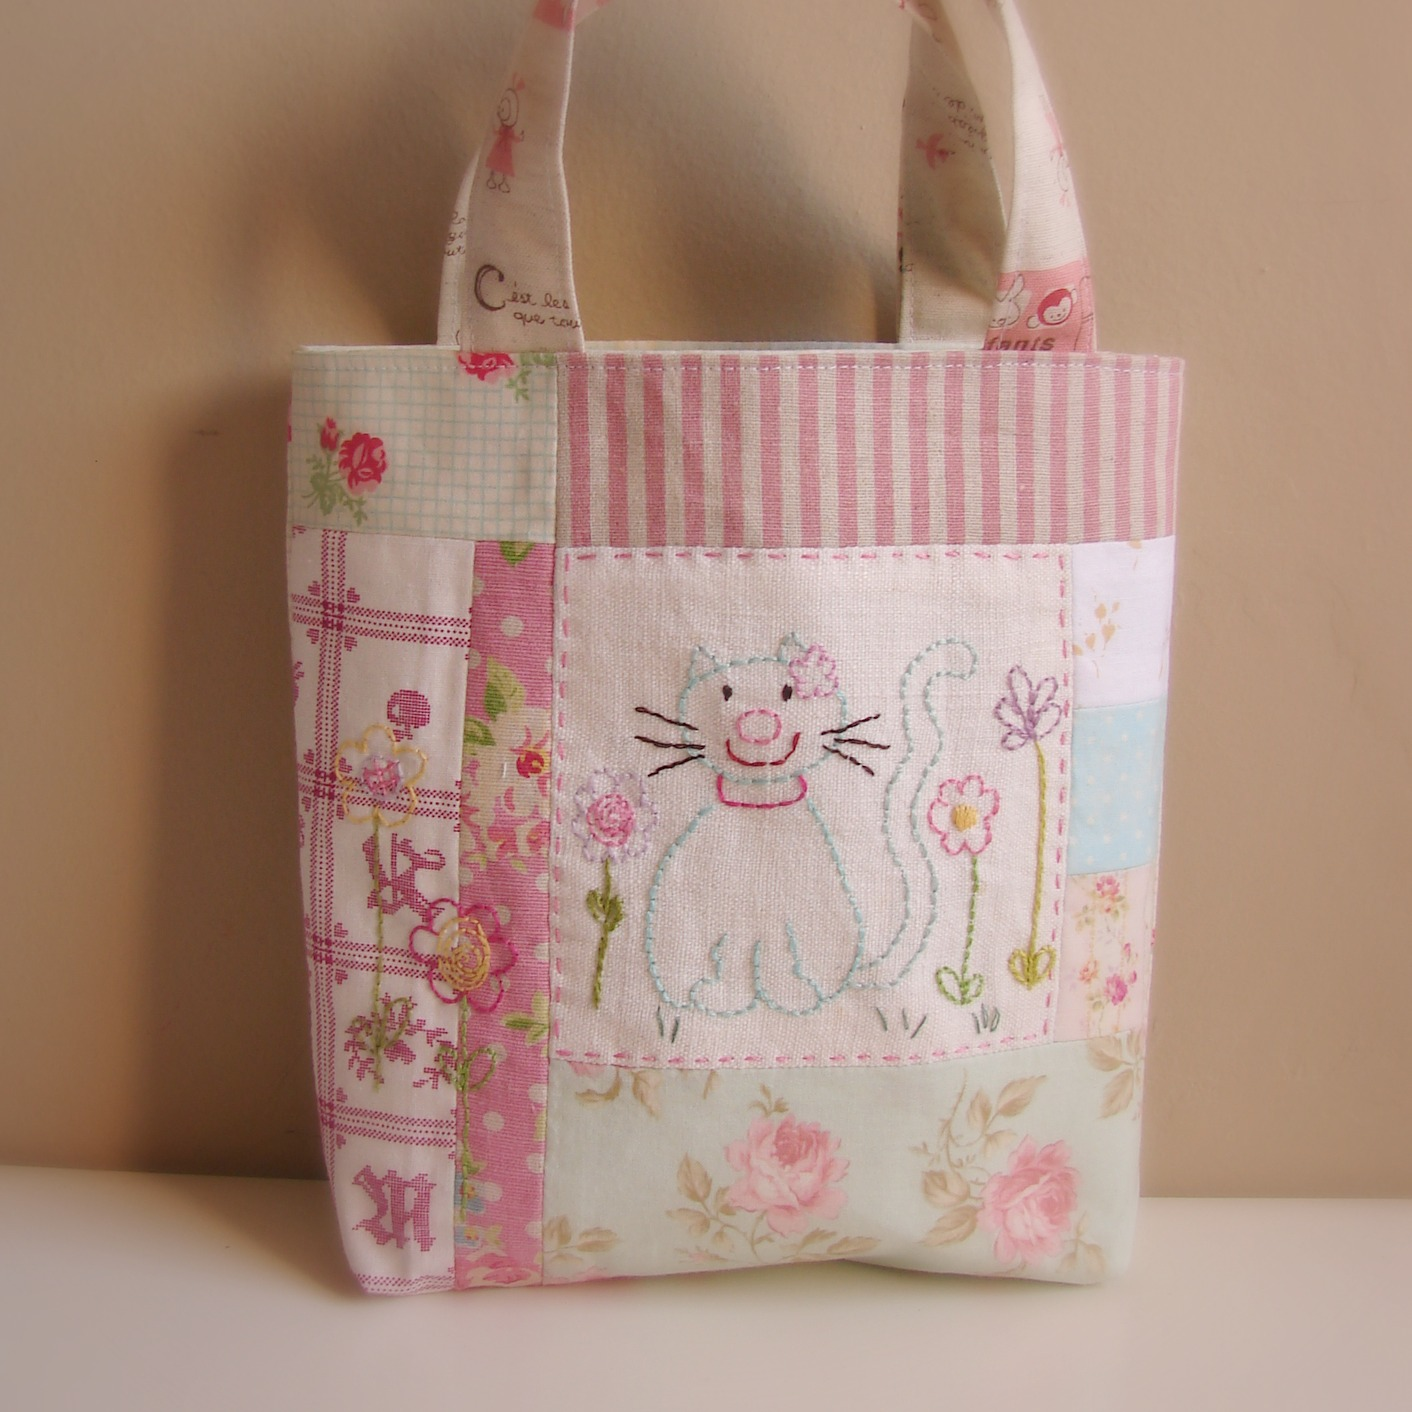 Roxy Creations Hand Embroidered Patchwork Bags